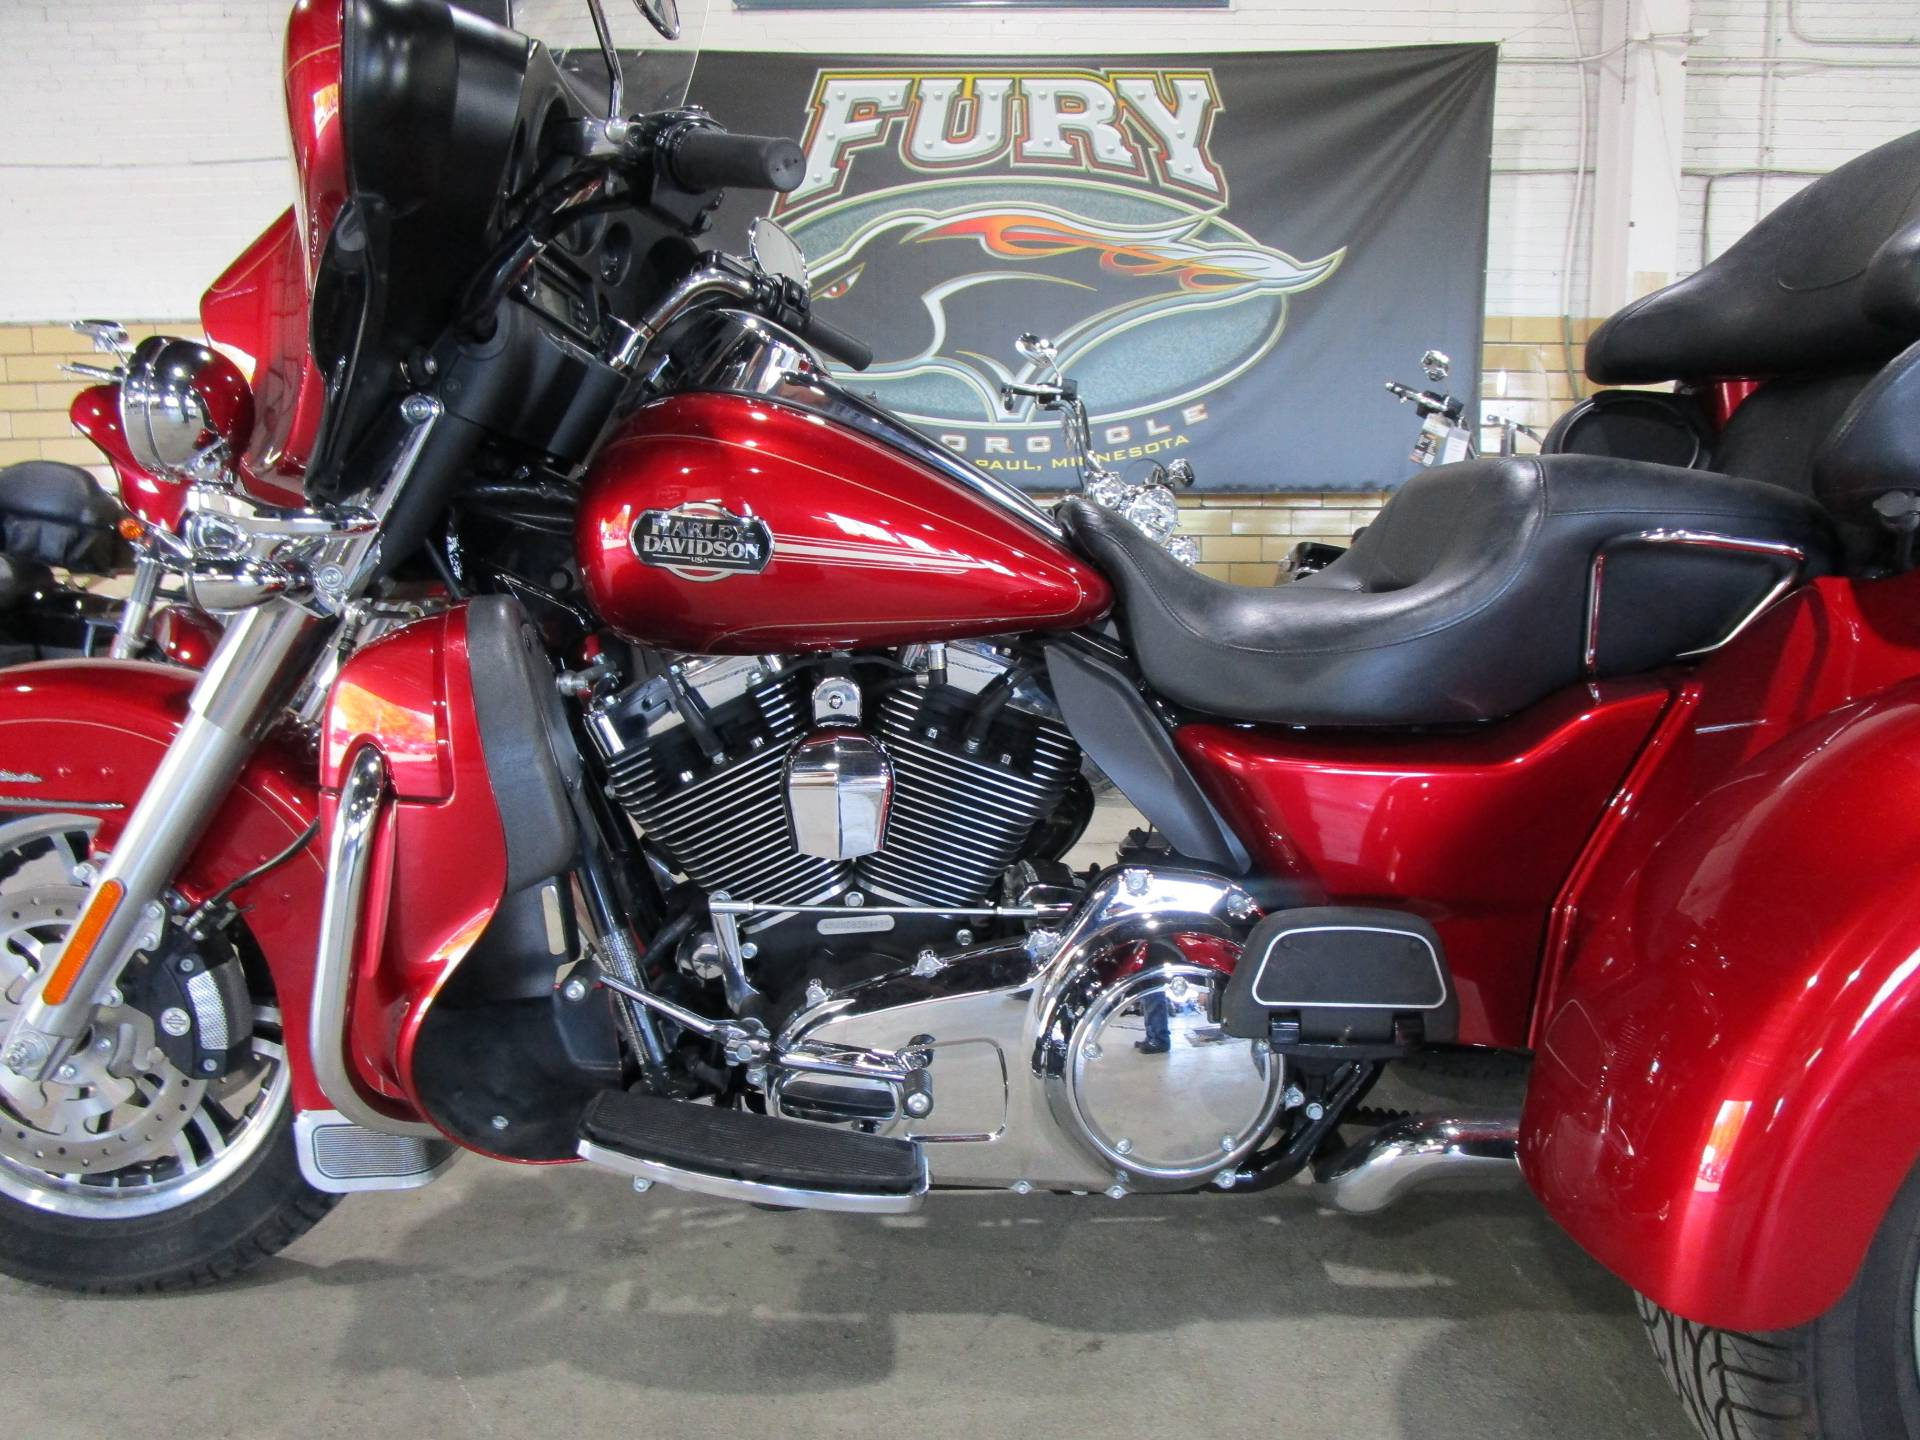 2013 Harley-Davidson FLHTCUTG TRI GLIDE in South Saint Paul, Minnesota - Photo 10